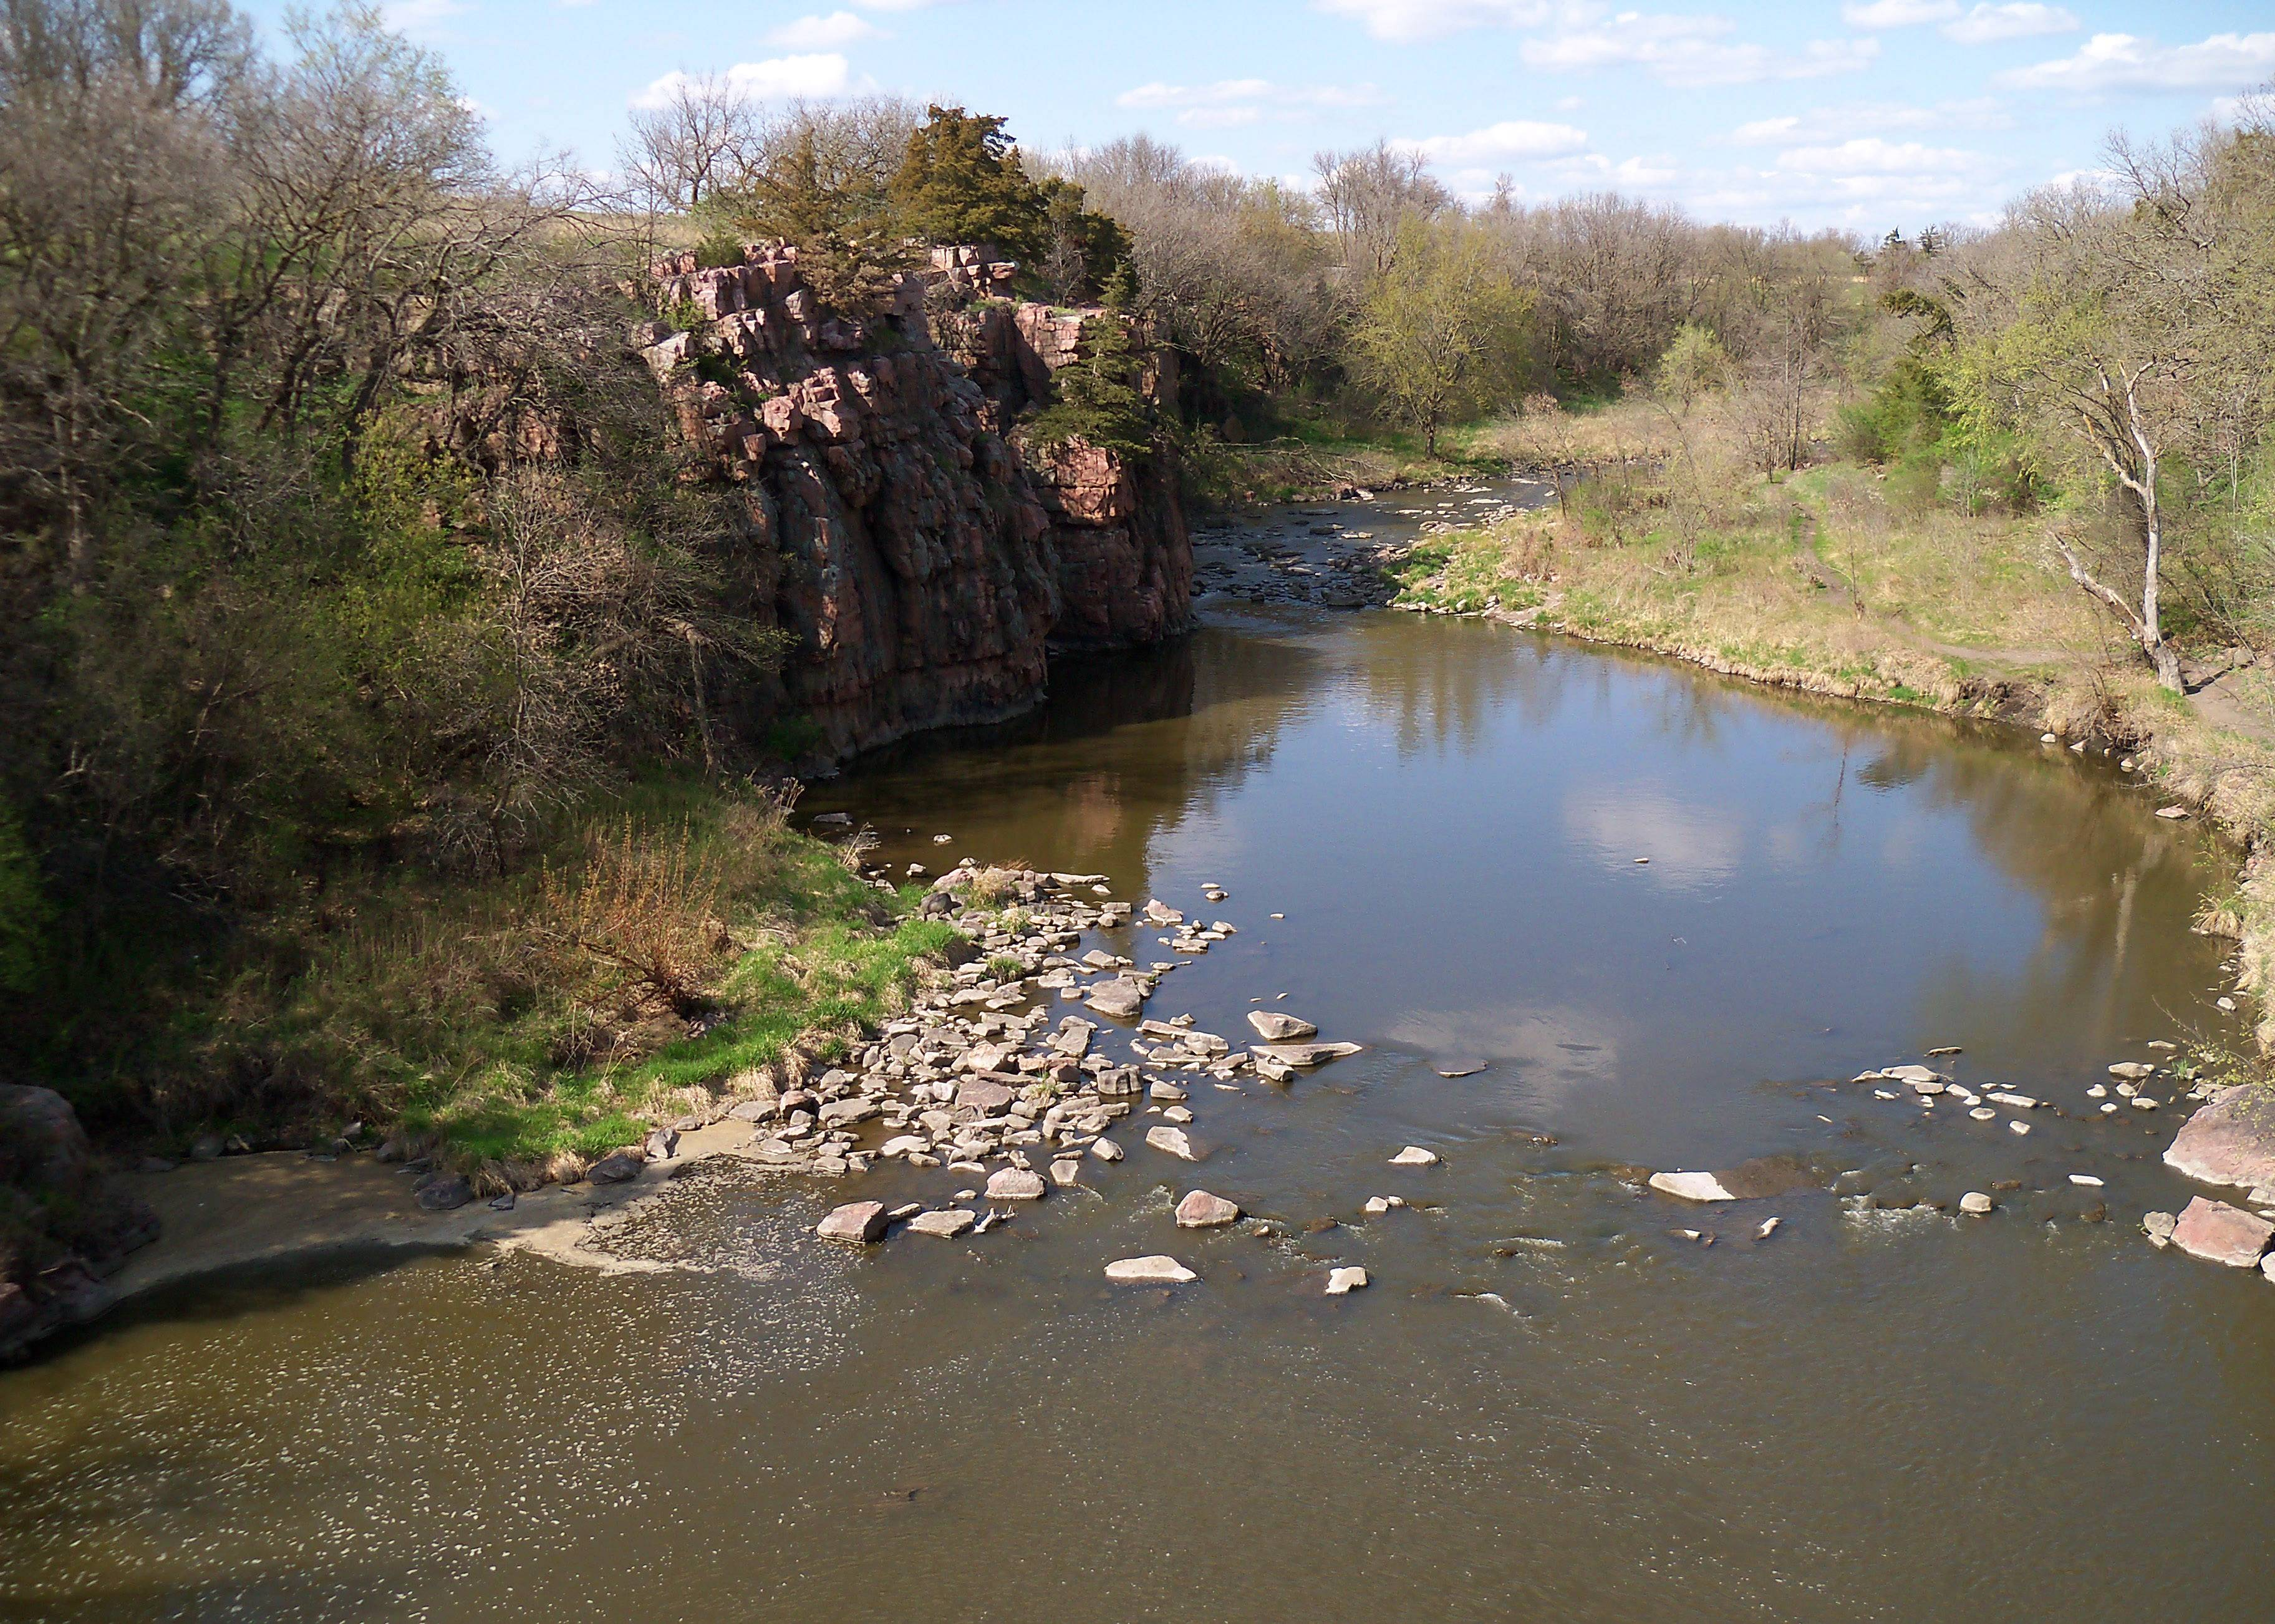 South Dakota's Division of Parks and Recreation says camping reservations are up this year, like at Split Rock Creek in Palisades State Park, partly because of a yearning to be outdoors after the brutal winter.